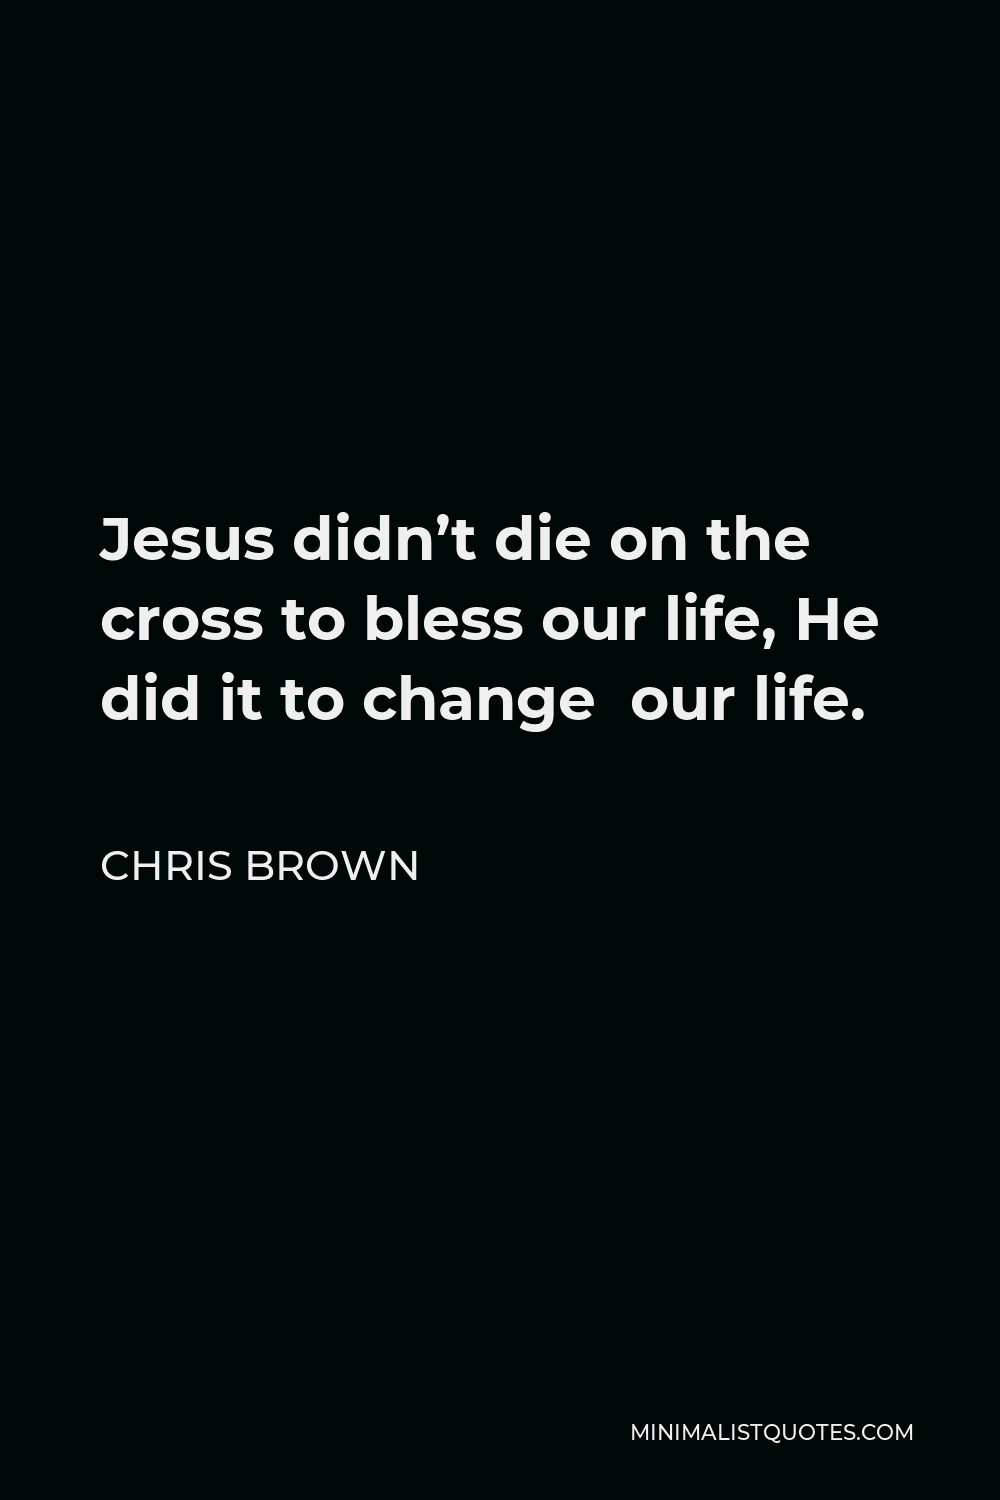 Chris Brown Quote - Jesus didn't die on the cross to bless our life, He did it to change our life.